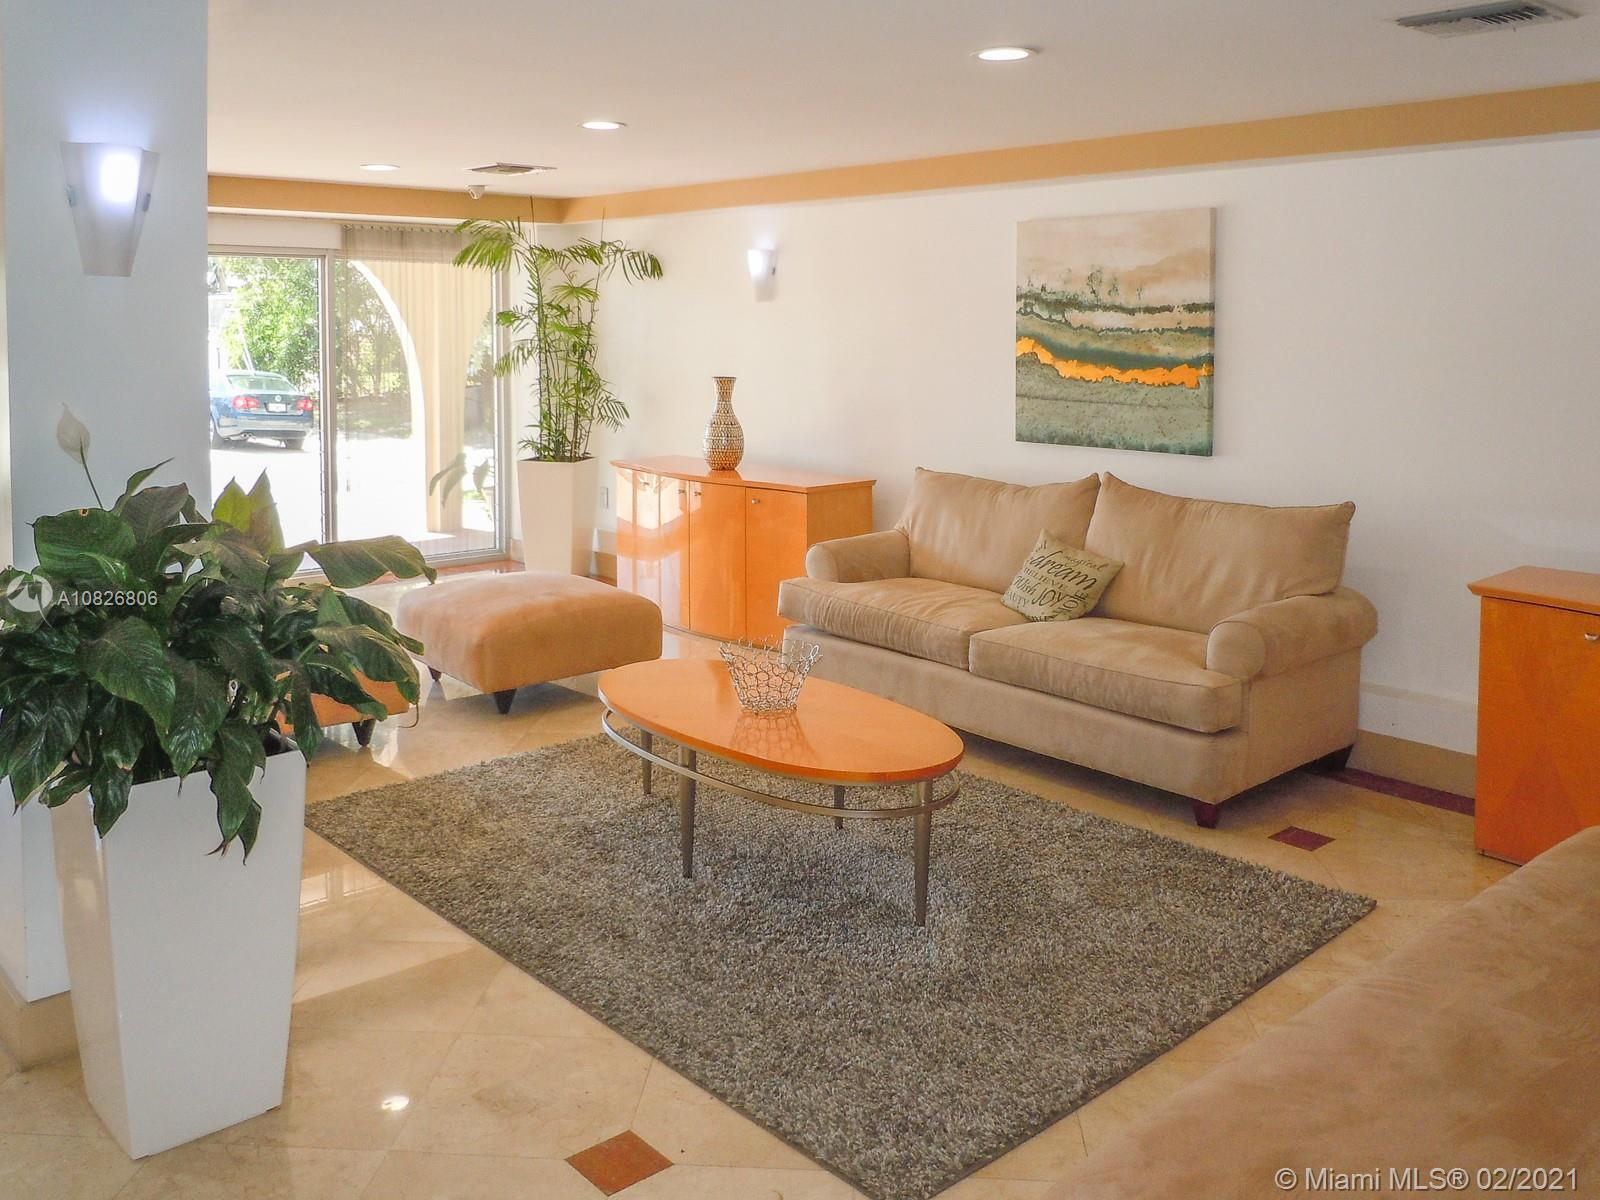 Island Place, 1455 N Treasure Dr Unit 7 D, North Bay Village, Florida 33141, image 30